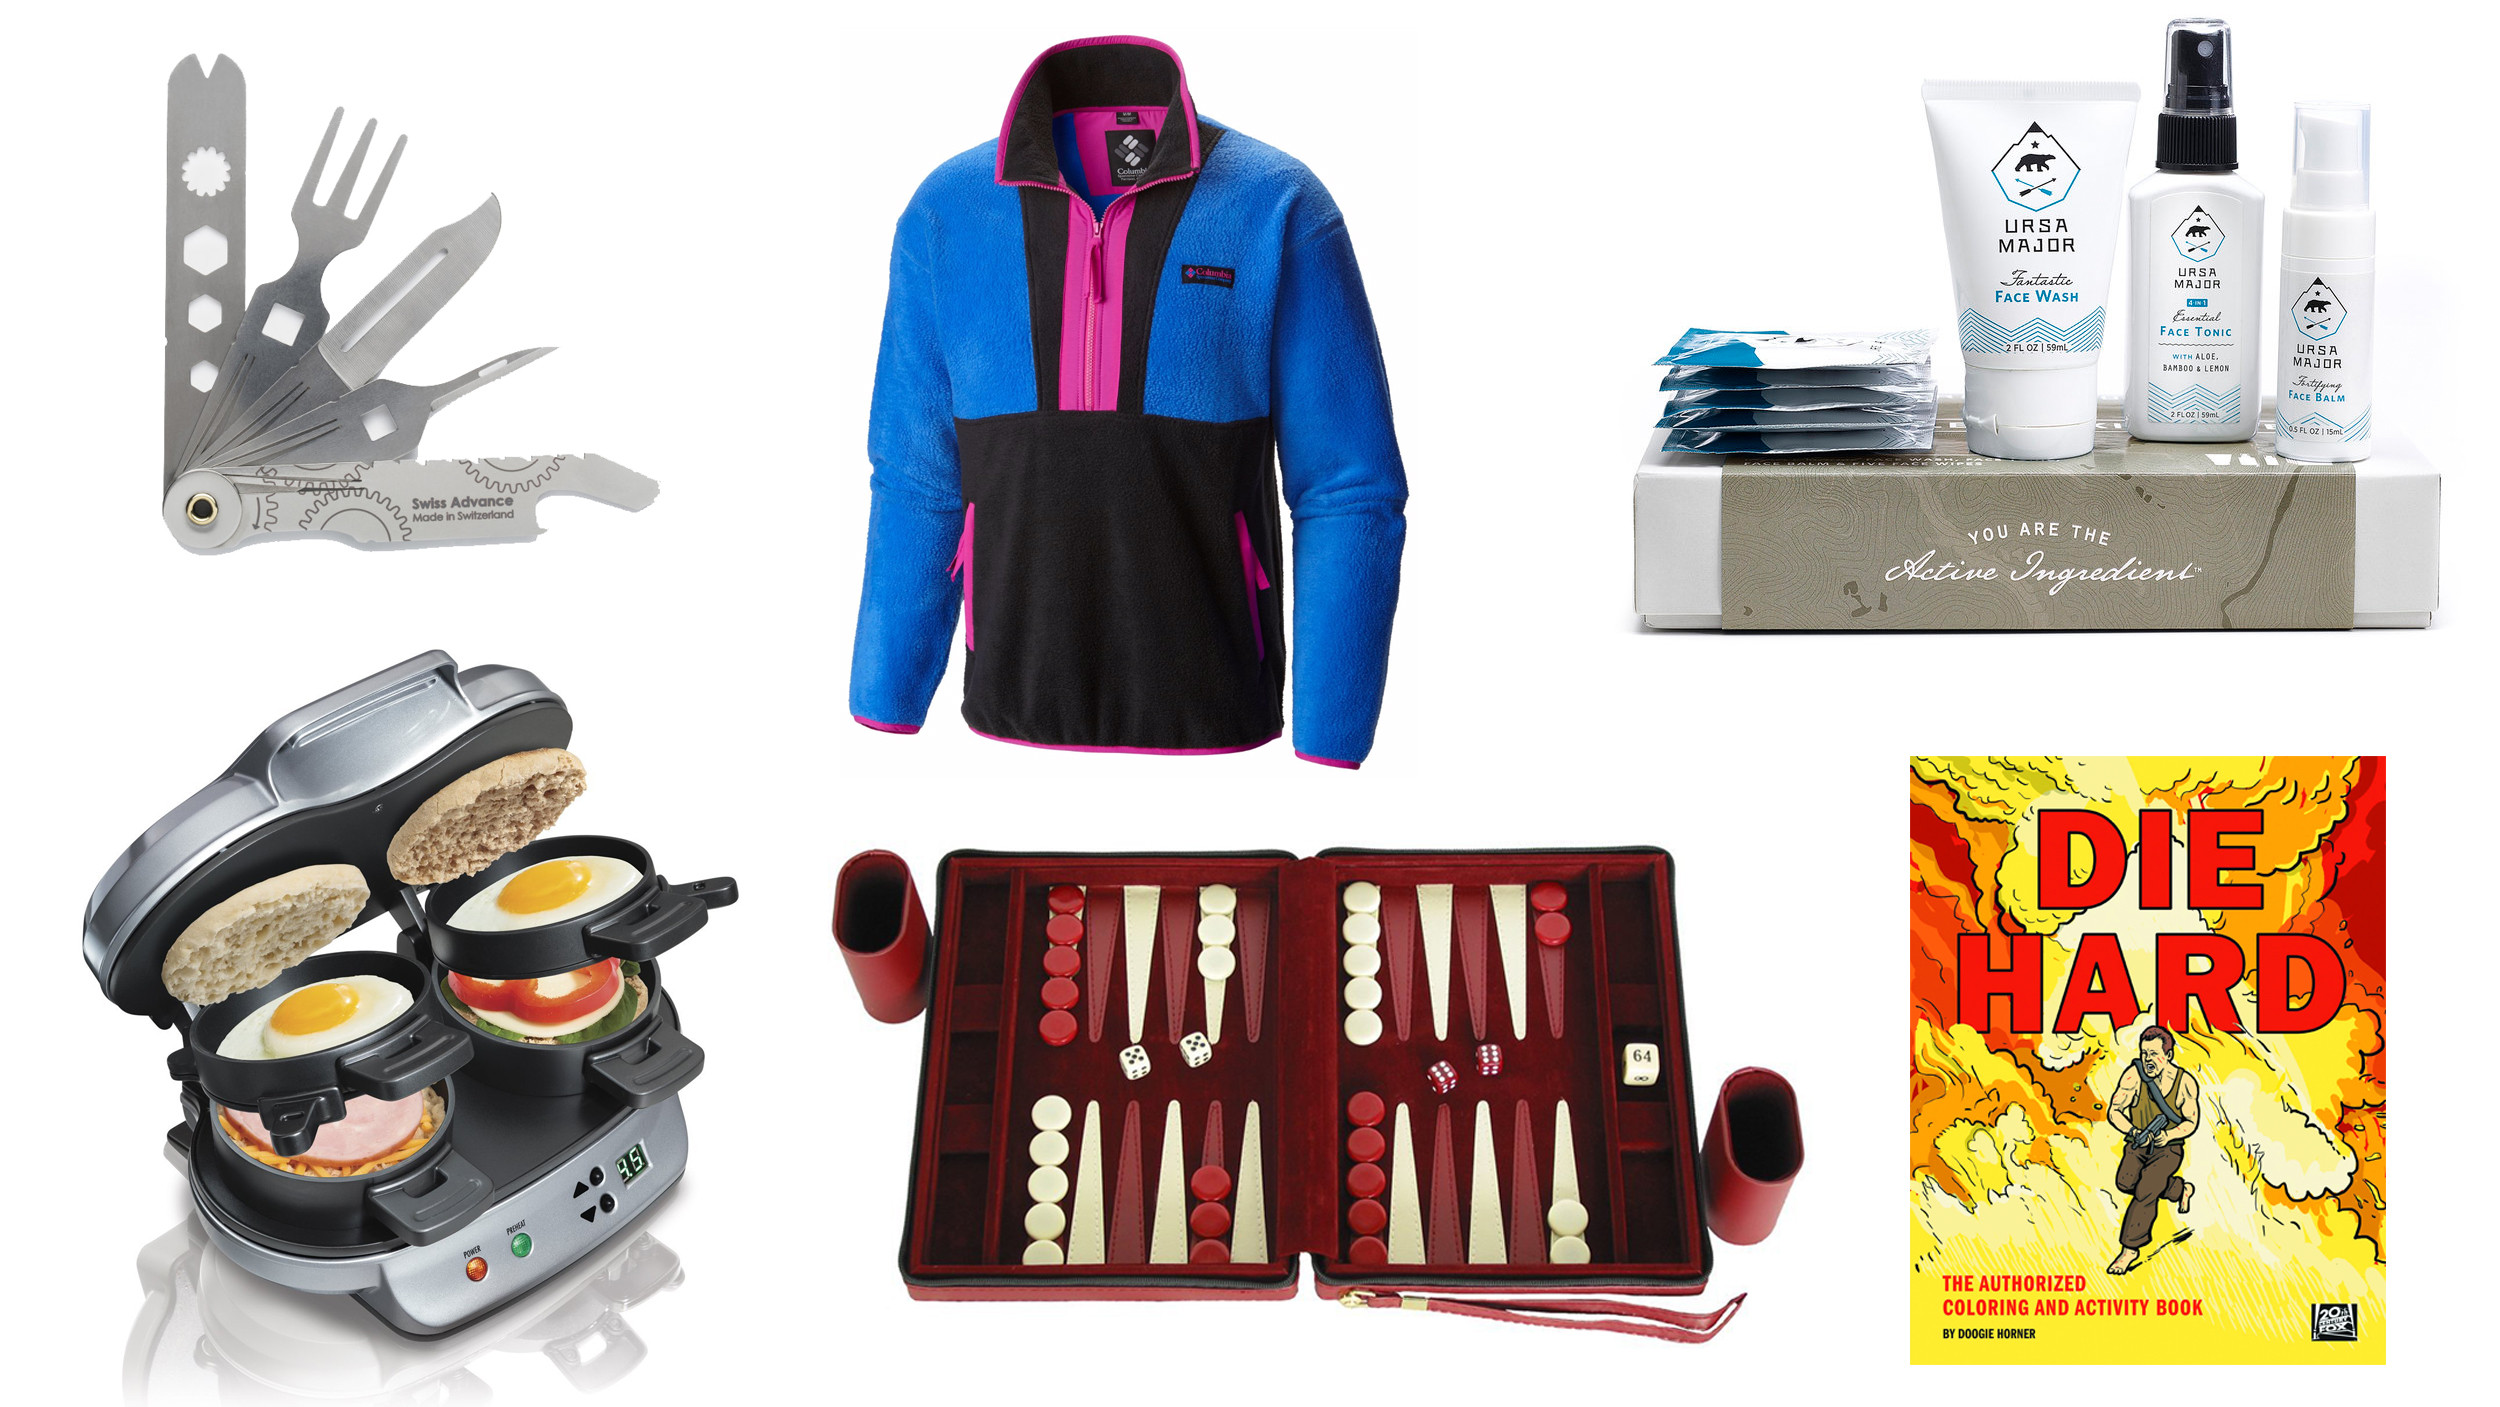 Best ideas about Guy Gift Ideas . Save or Pin Holiday t ideas for men from clothes to cooking and Now.